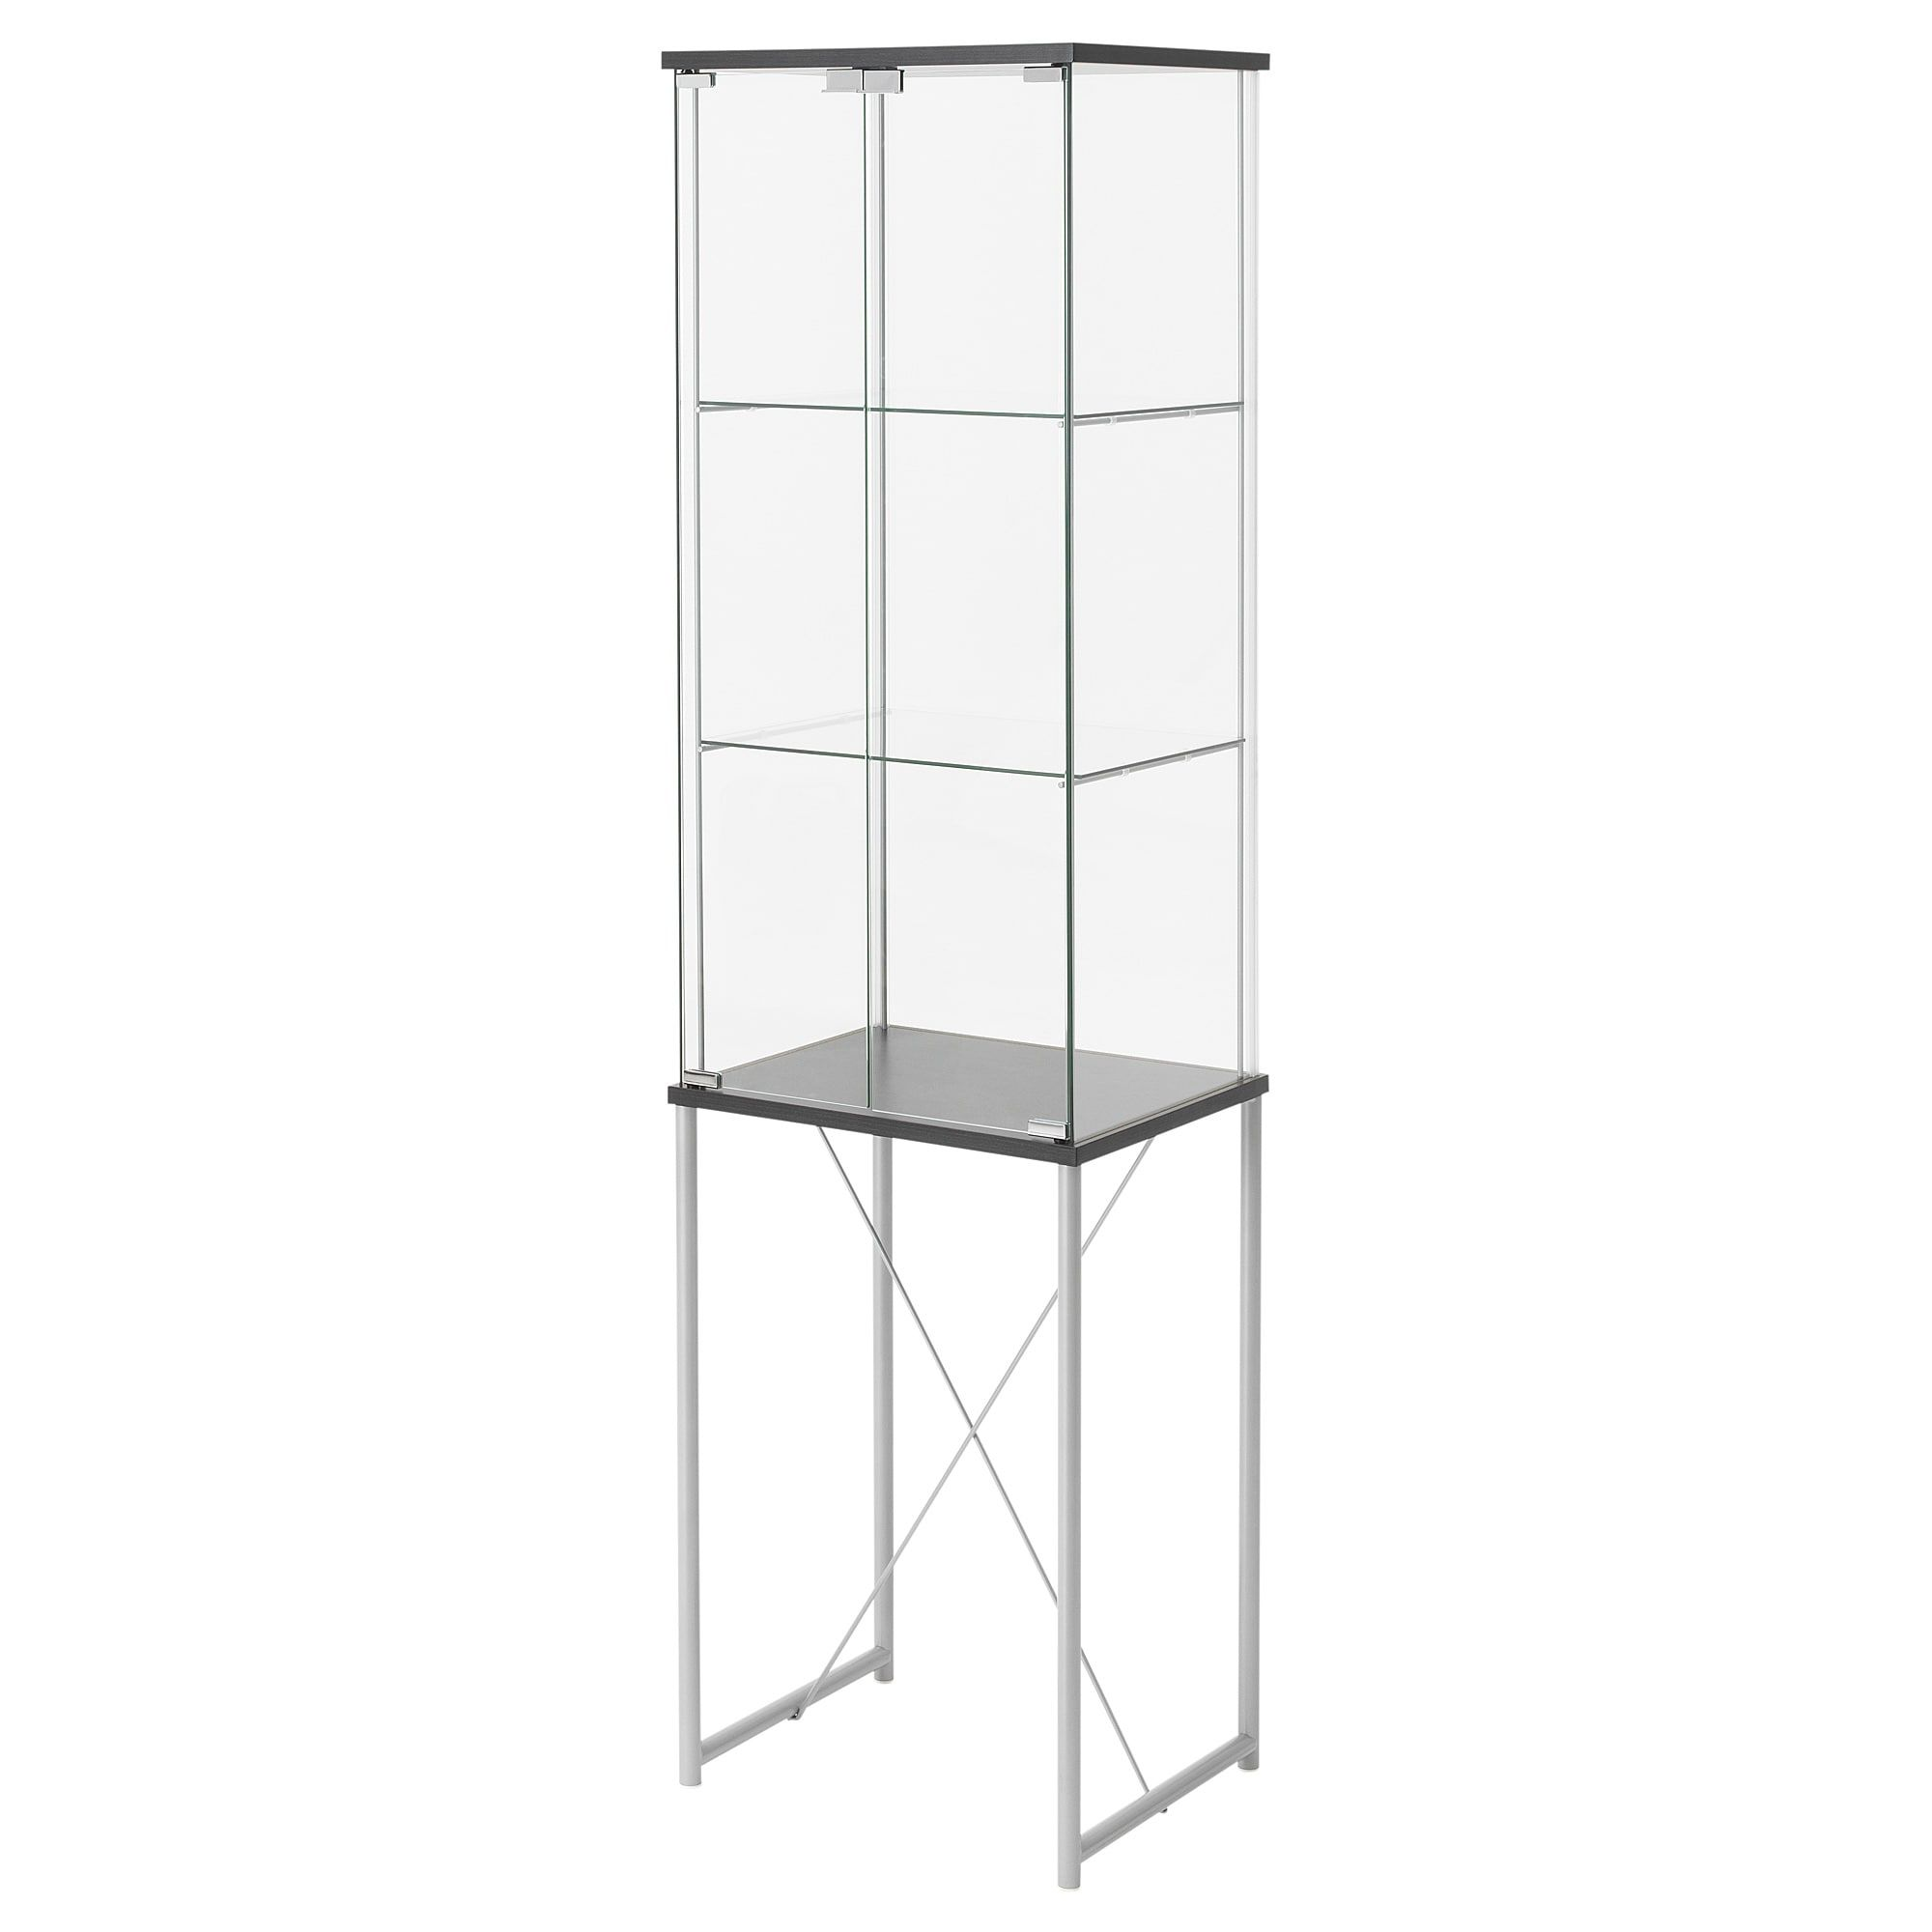 Ikea Glasregal Schwarz Vitrine FÄrgstark Schwarz In 2019 Products Glass Cabinet Doors